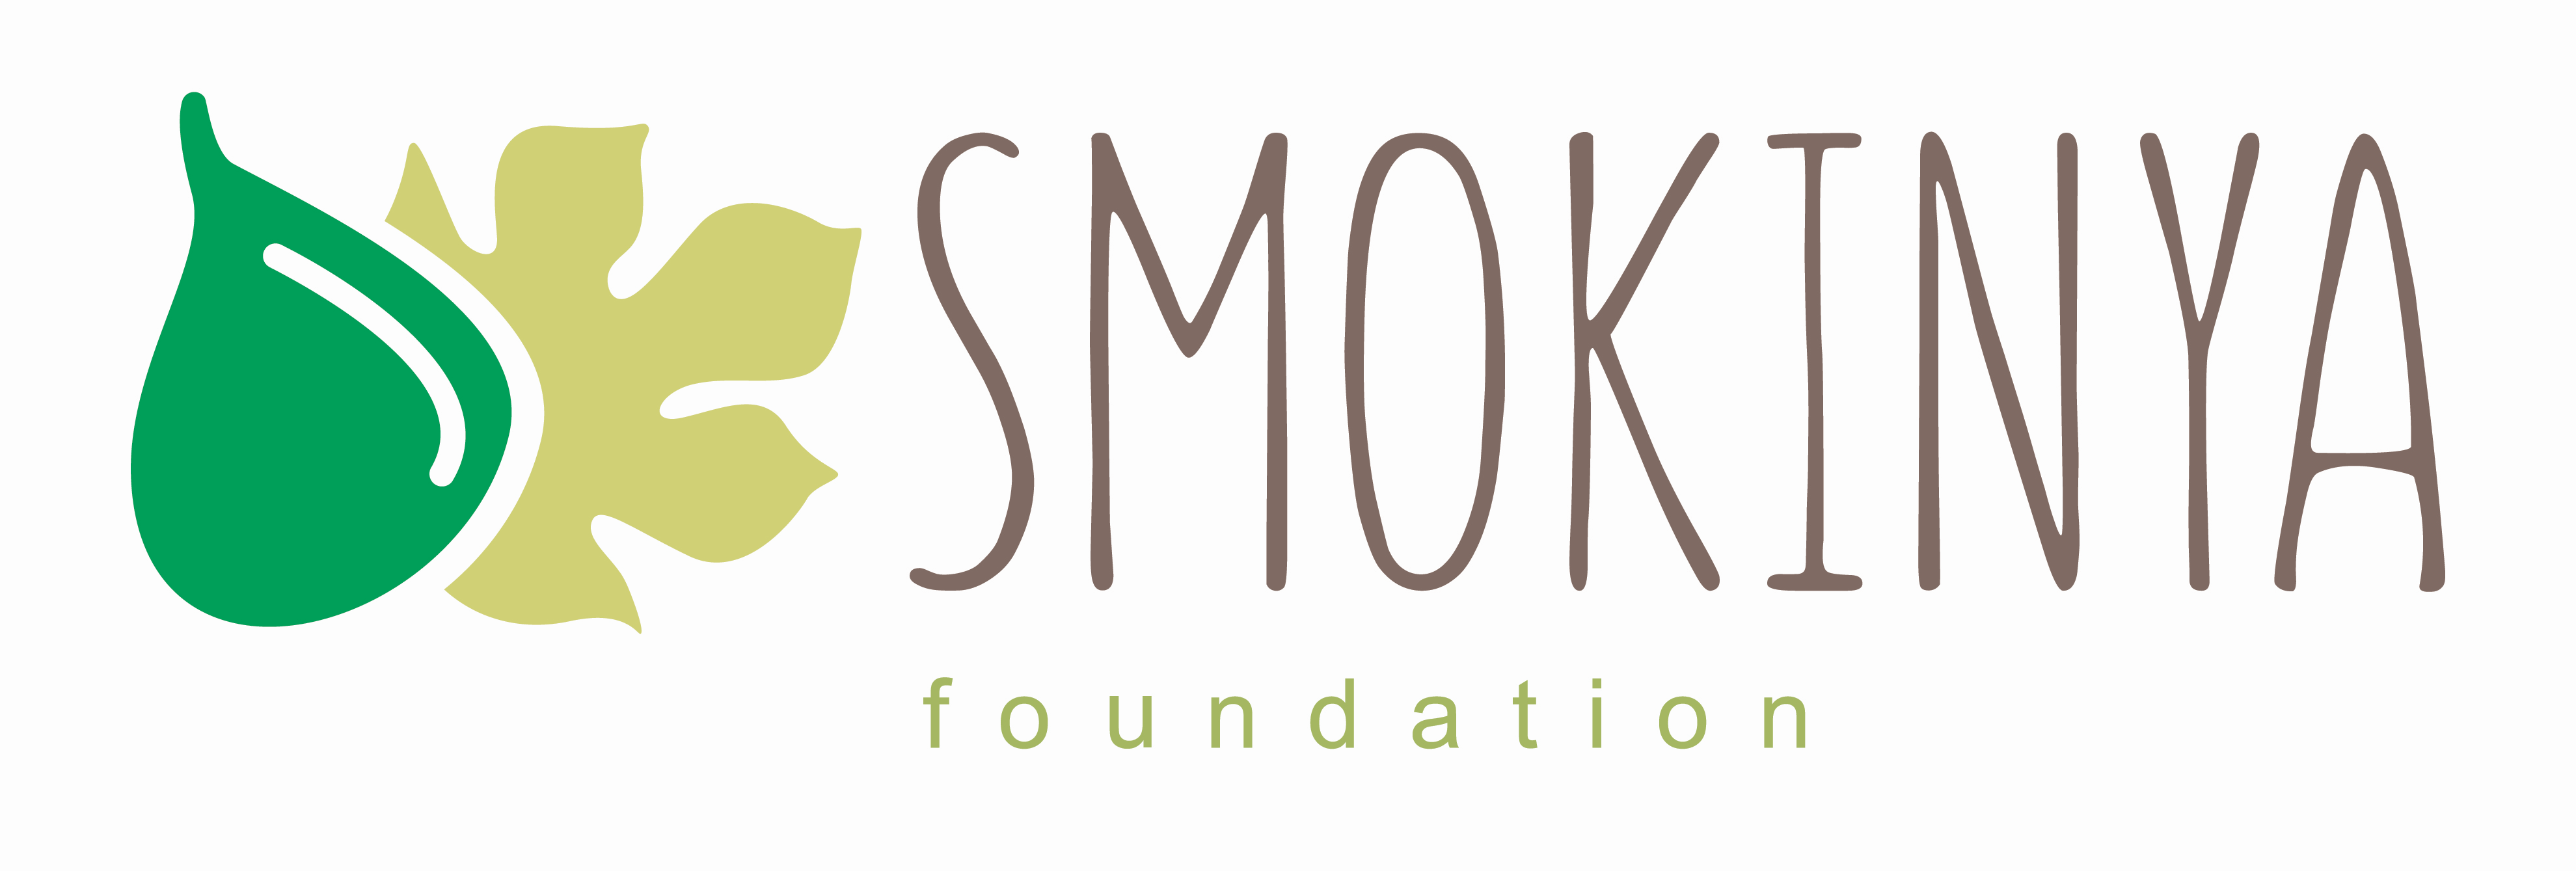 Smokinya Foundation